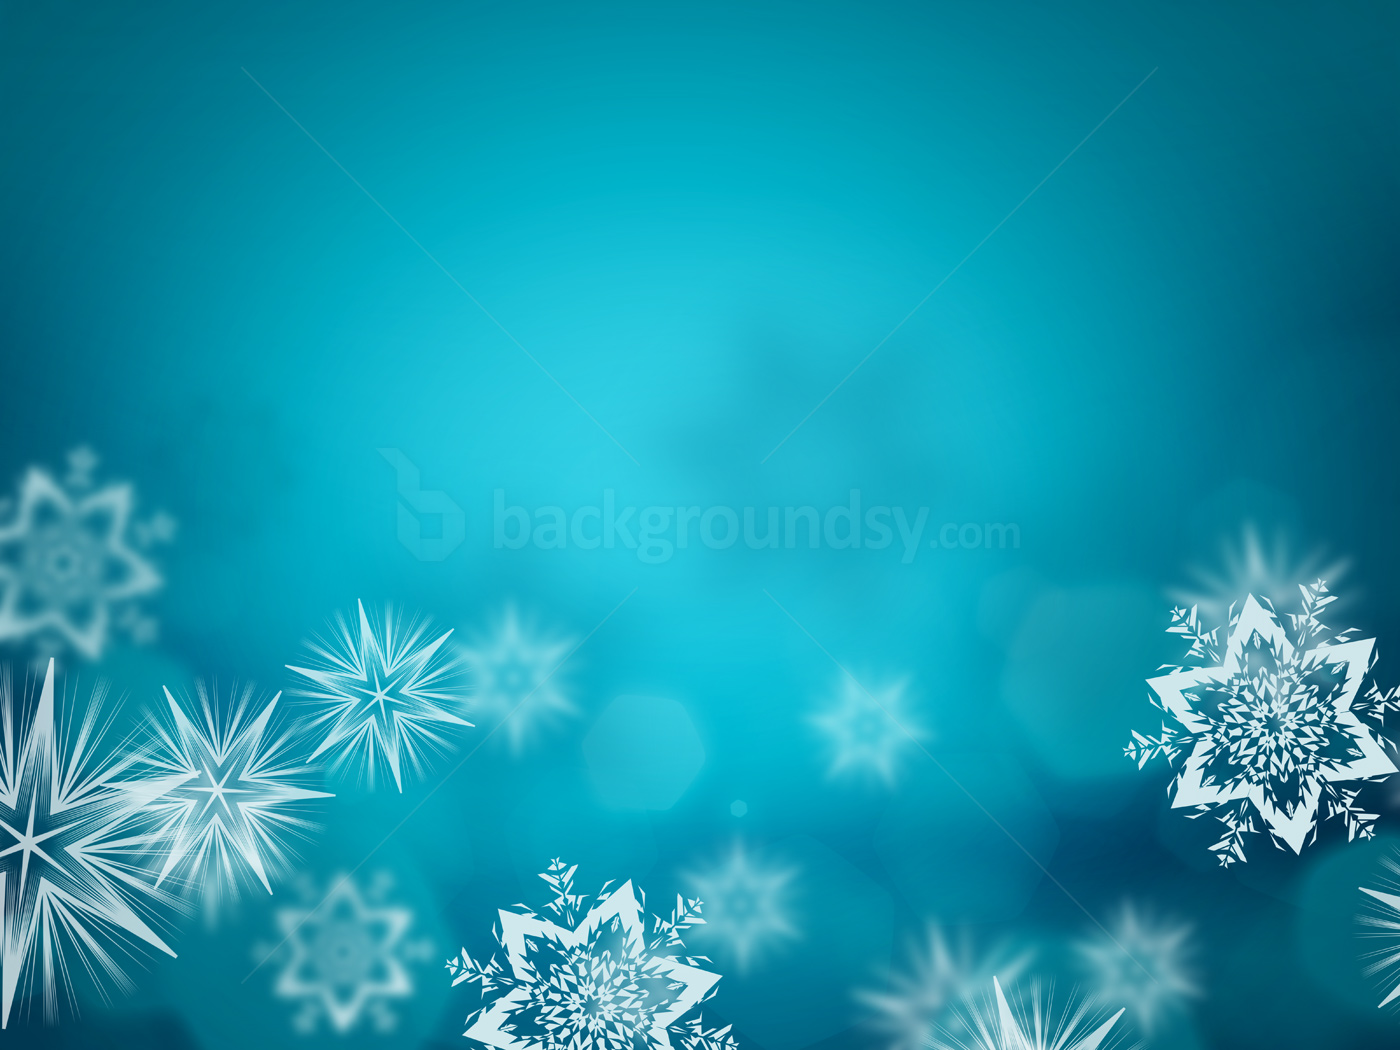 abstract winter background free - photo #44